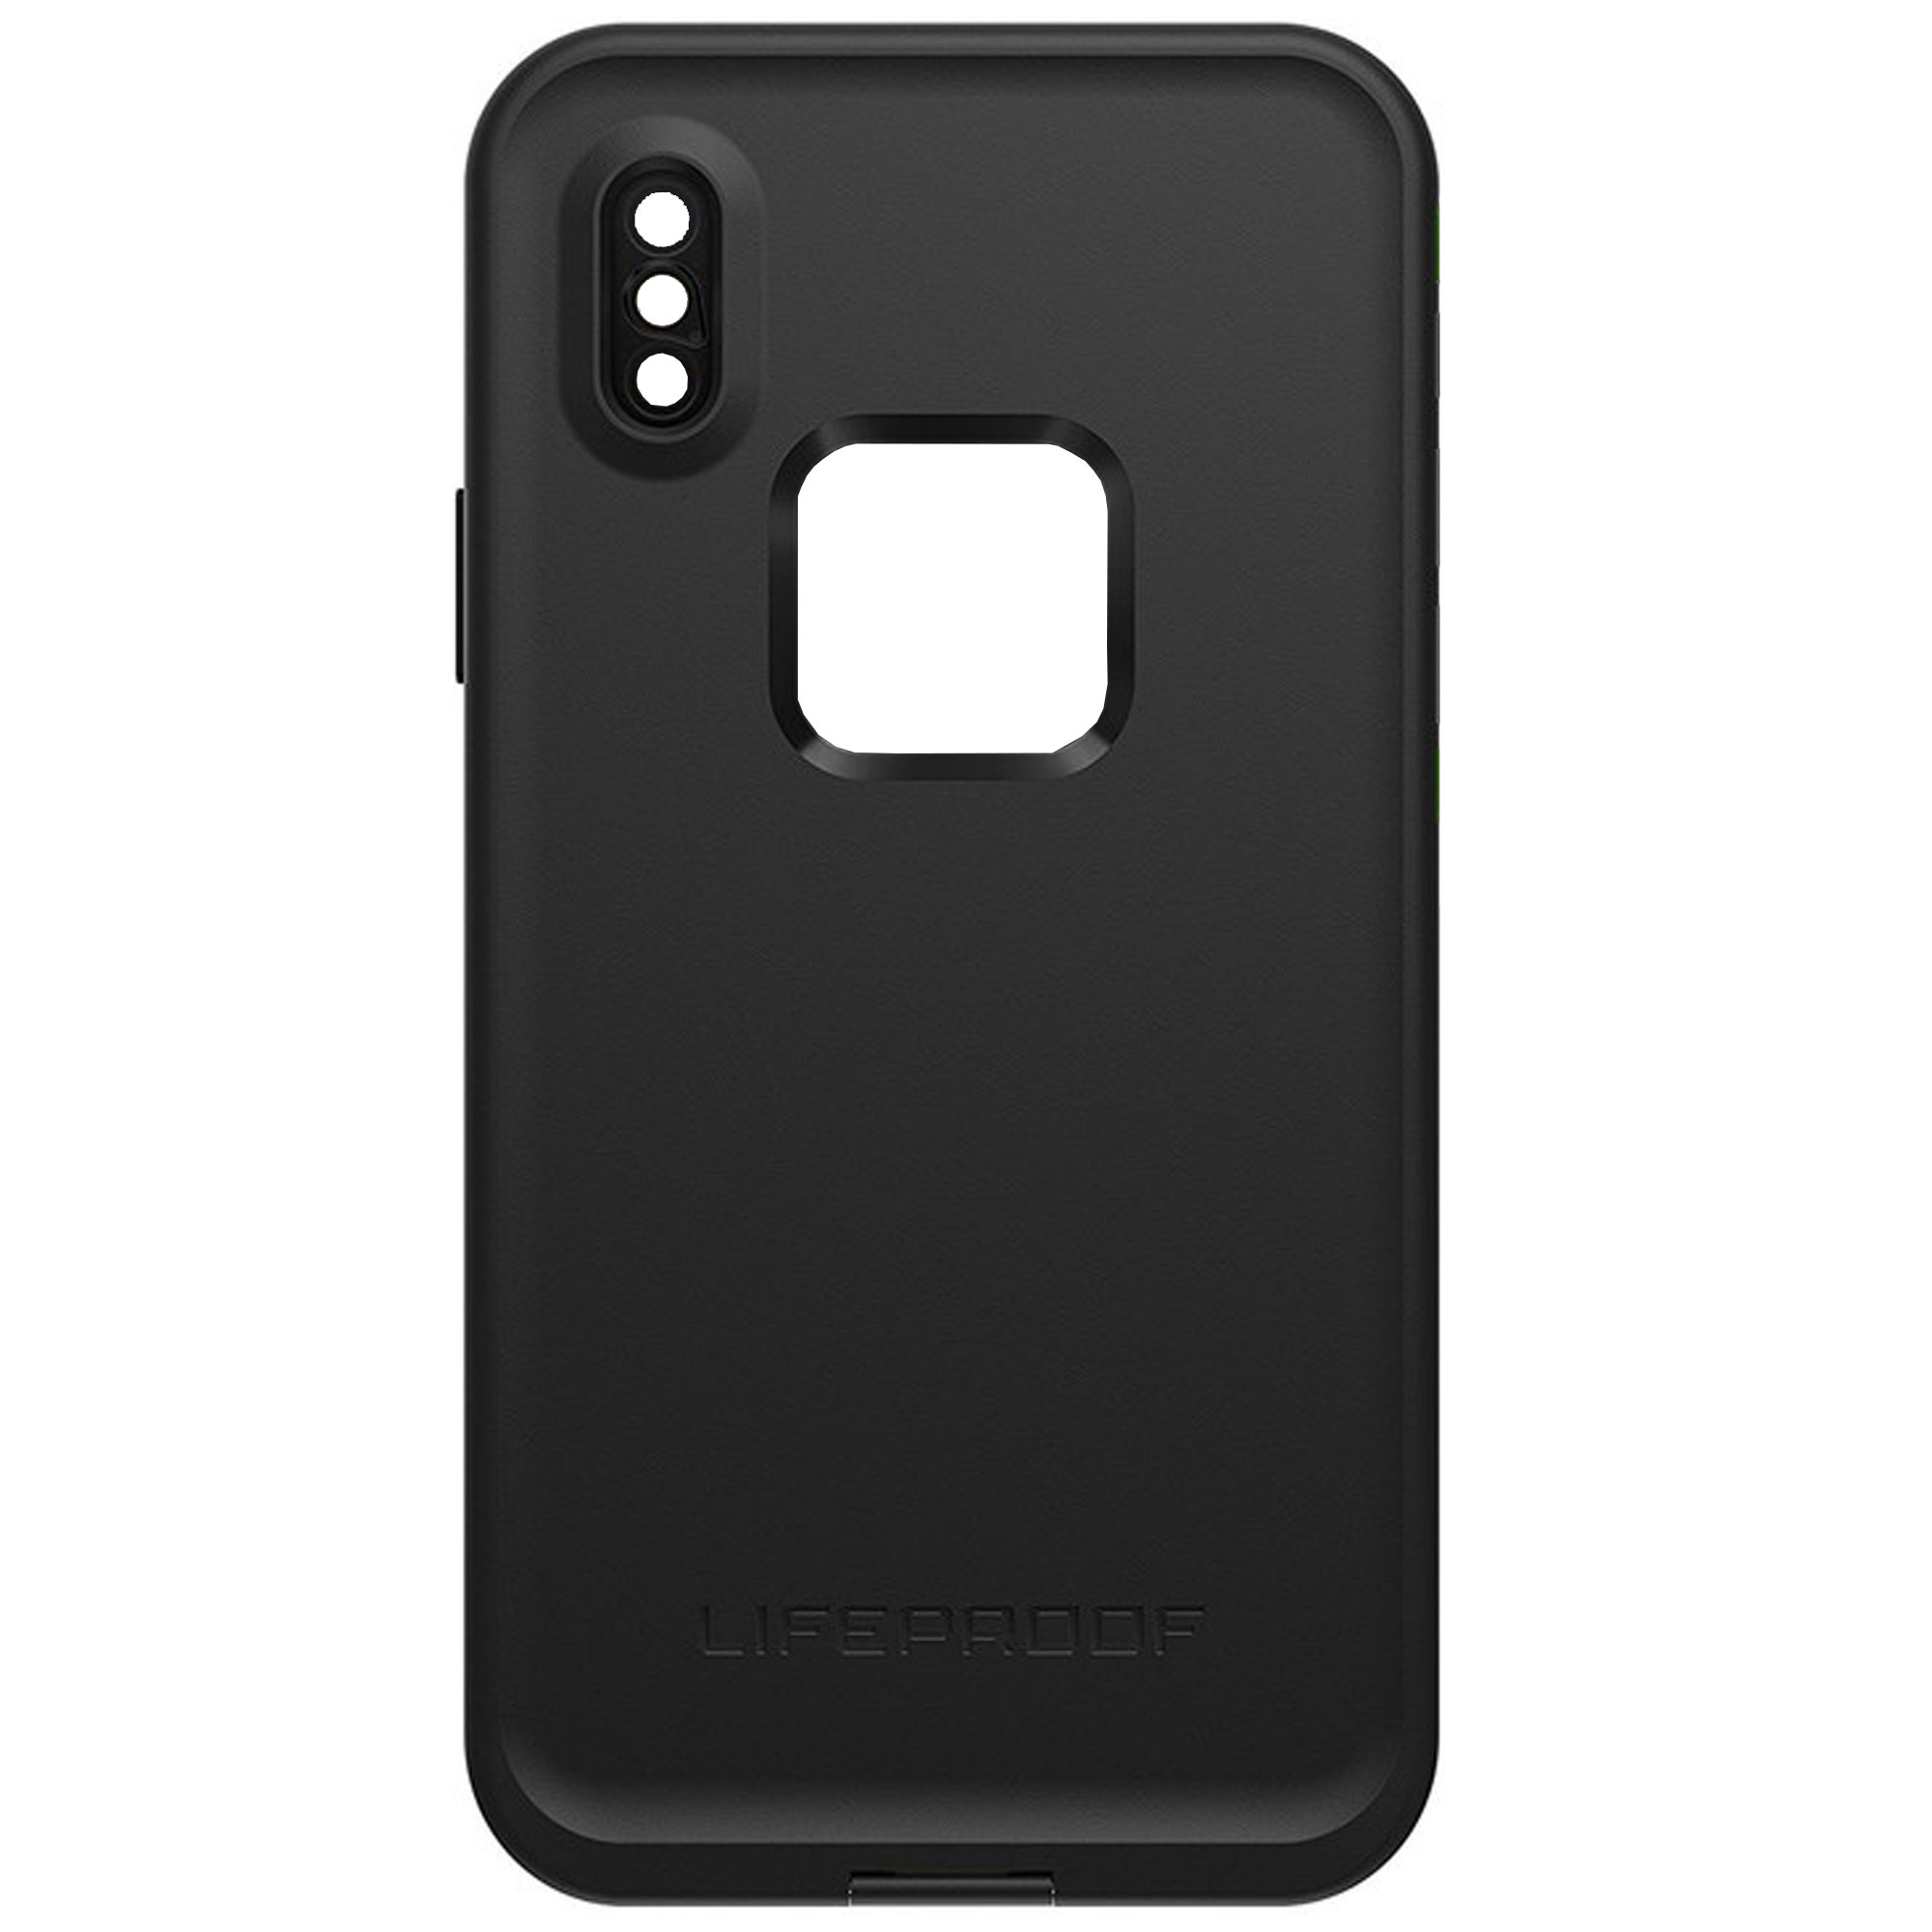 new product a3966 65c75 Otterbox,77-57163,OtterBox Lifeproof Fre Apple iPhone X